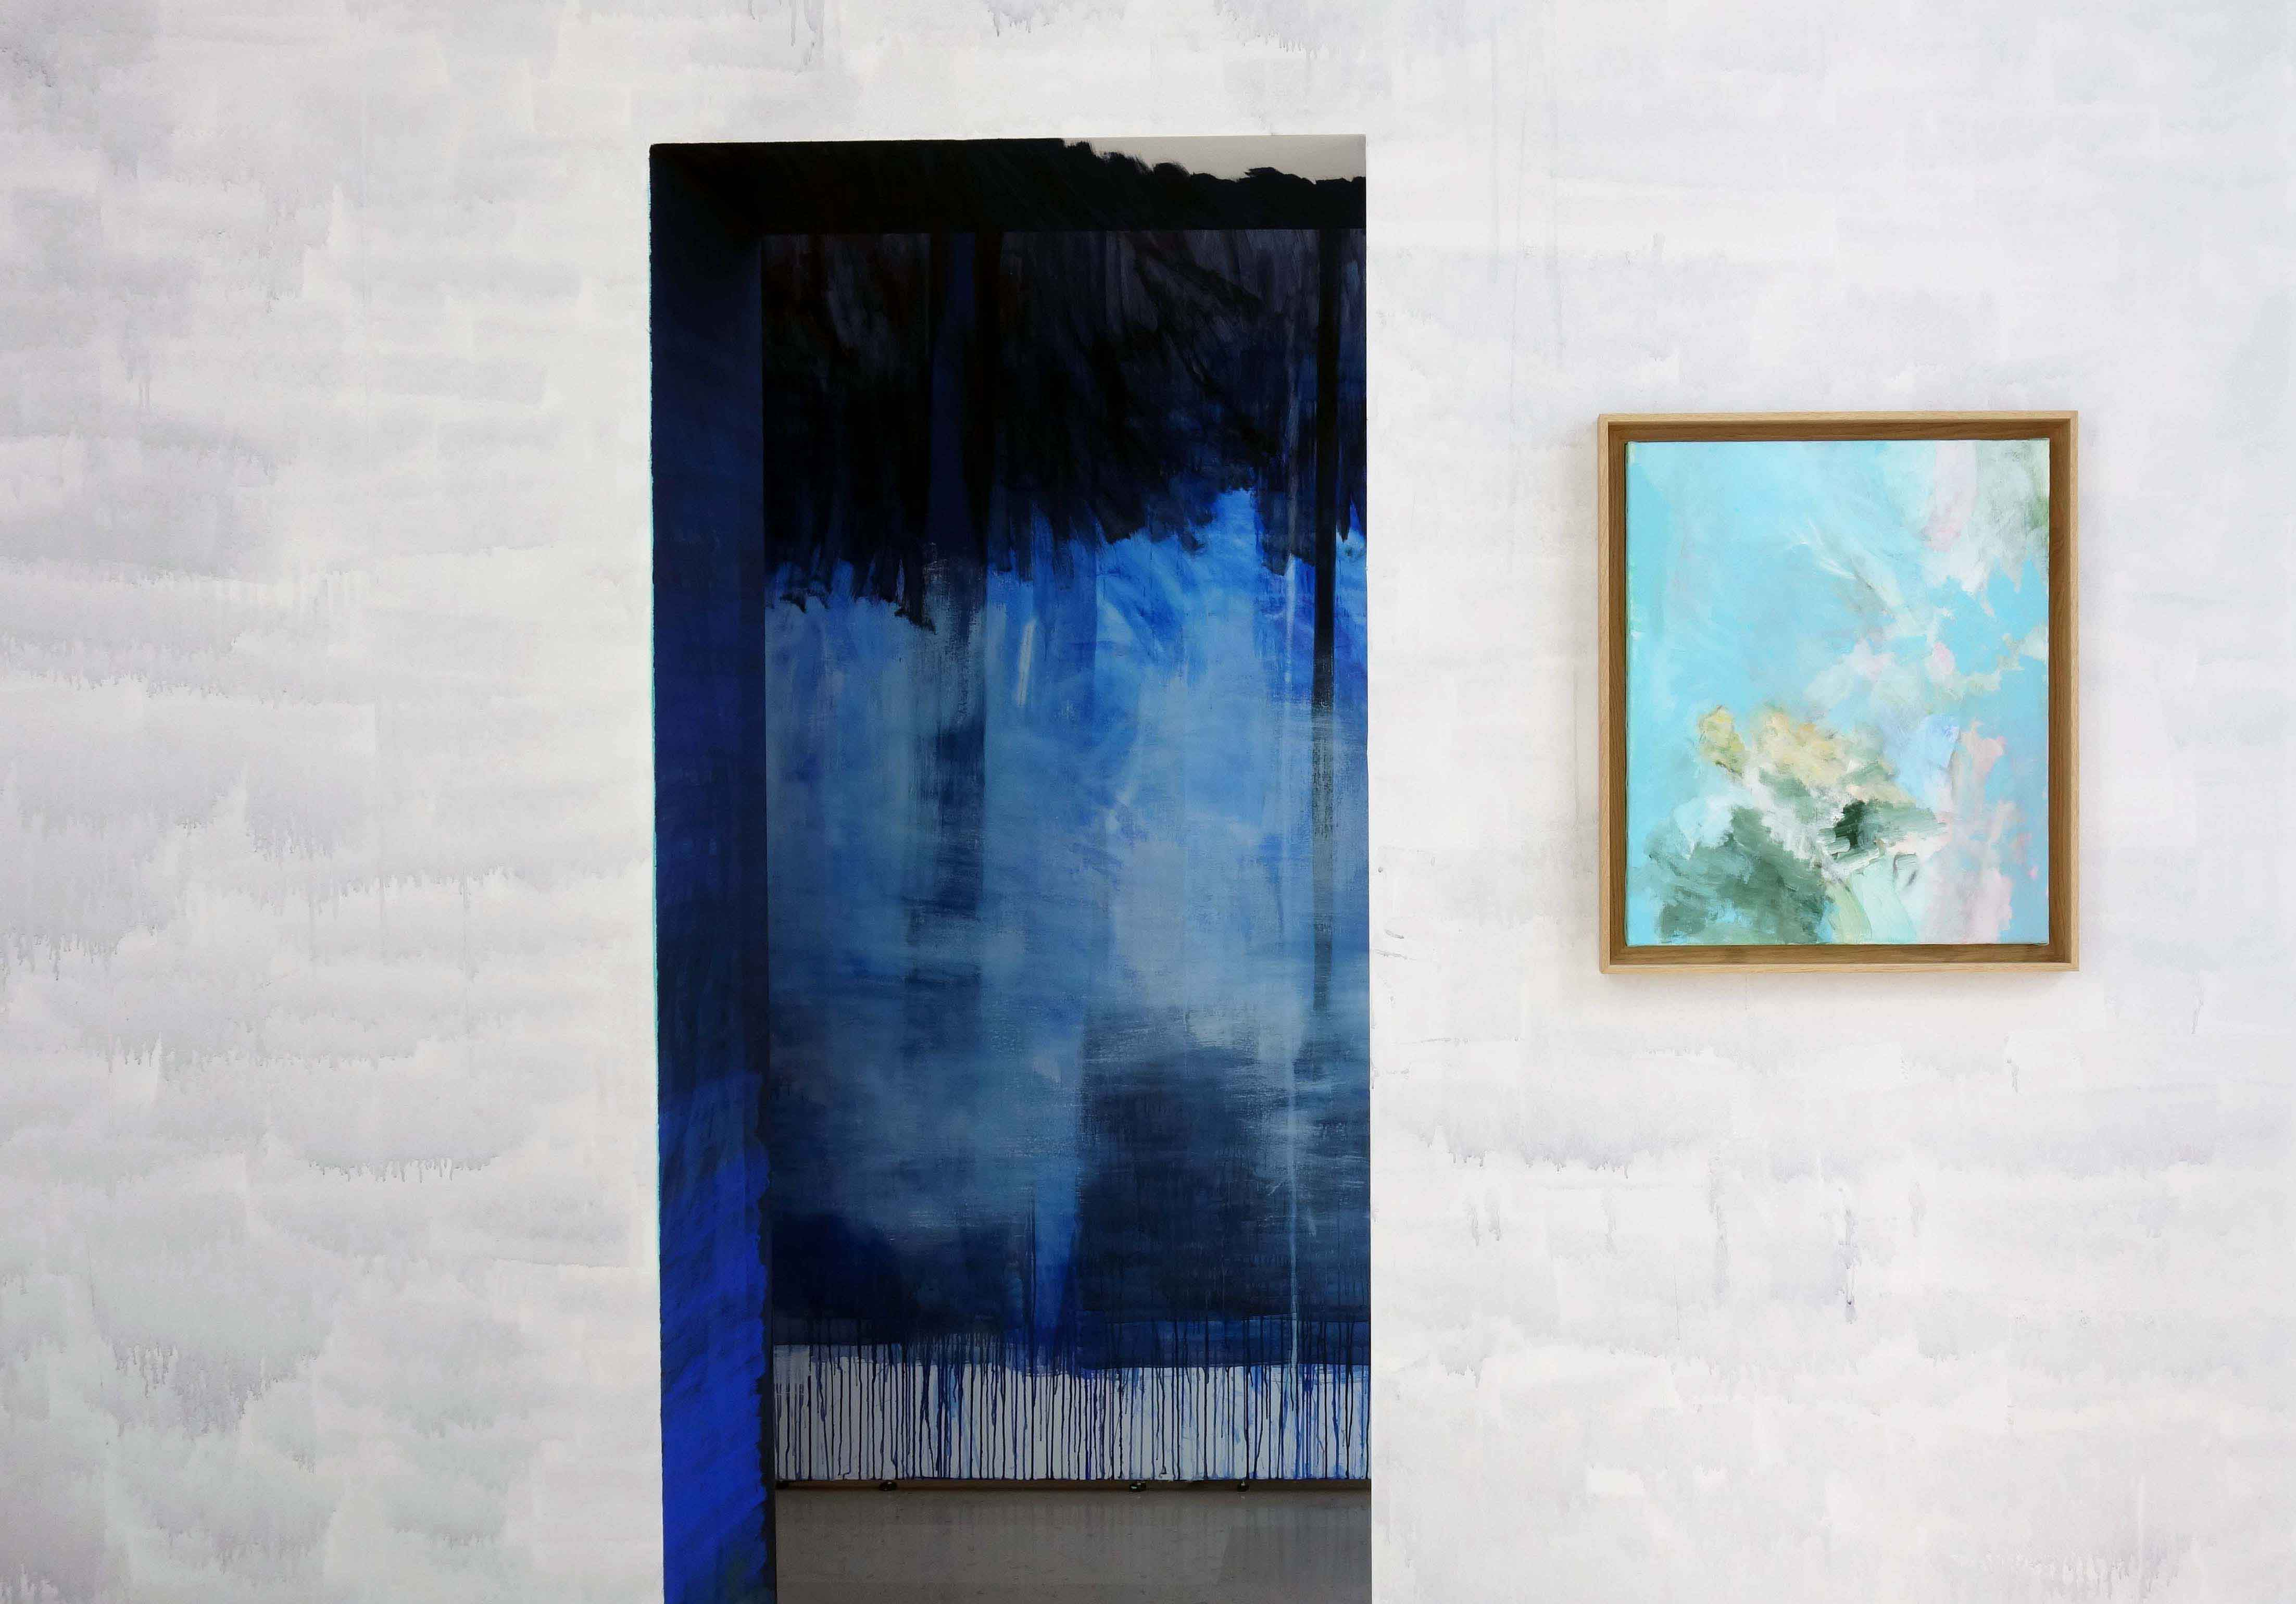 emmanuelle rosso artiste visual art blue theater project troupe erratum peinture paintings